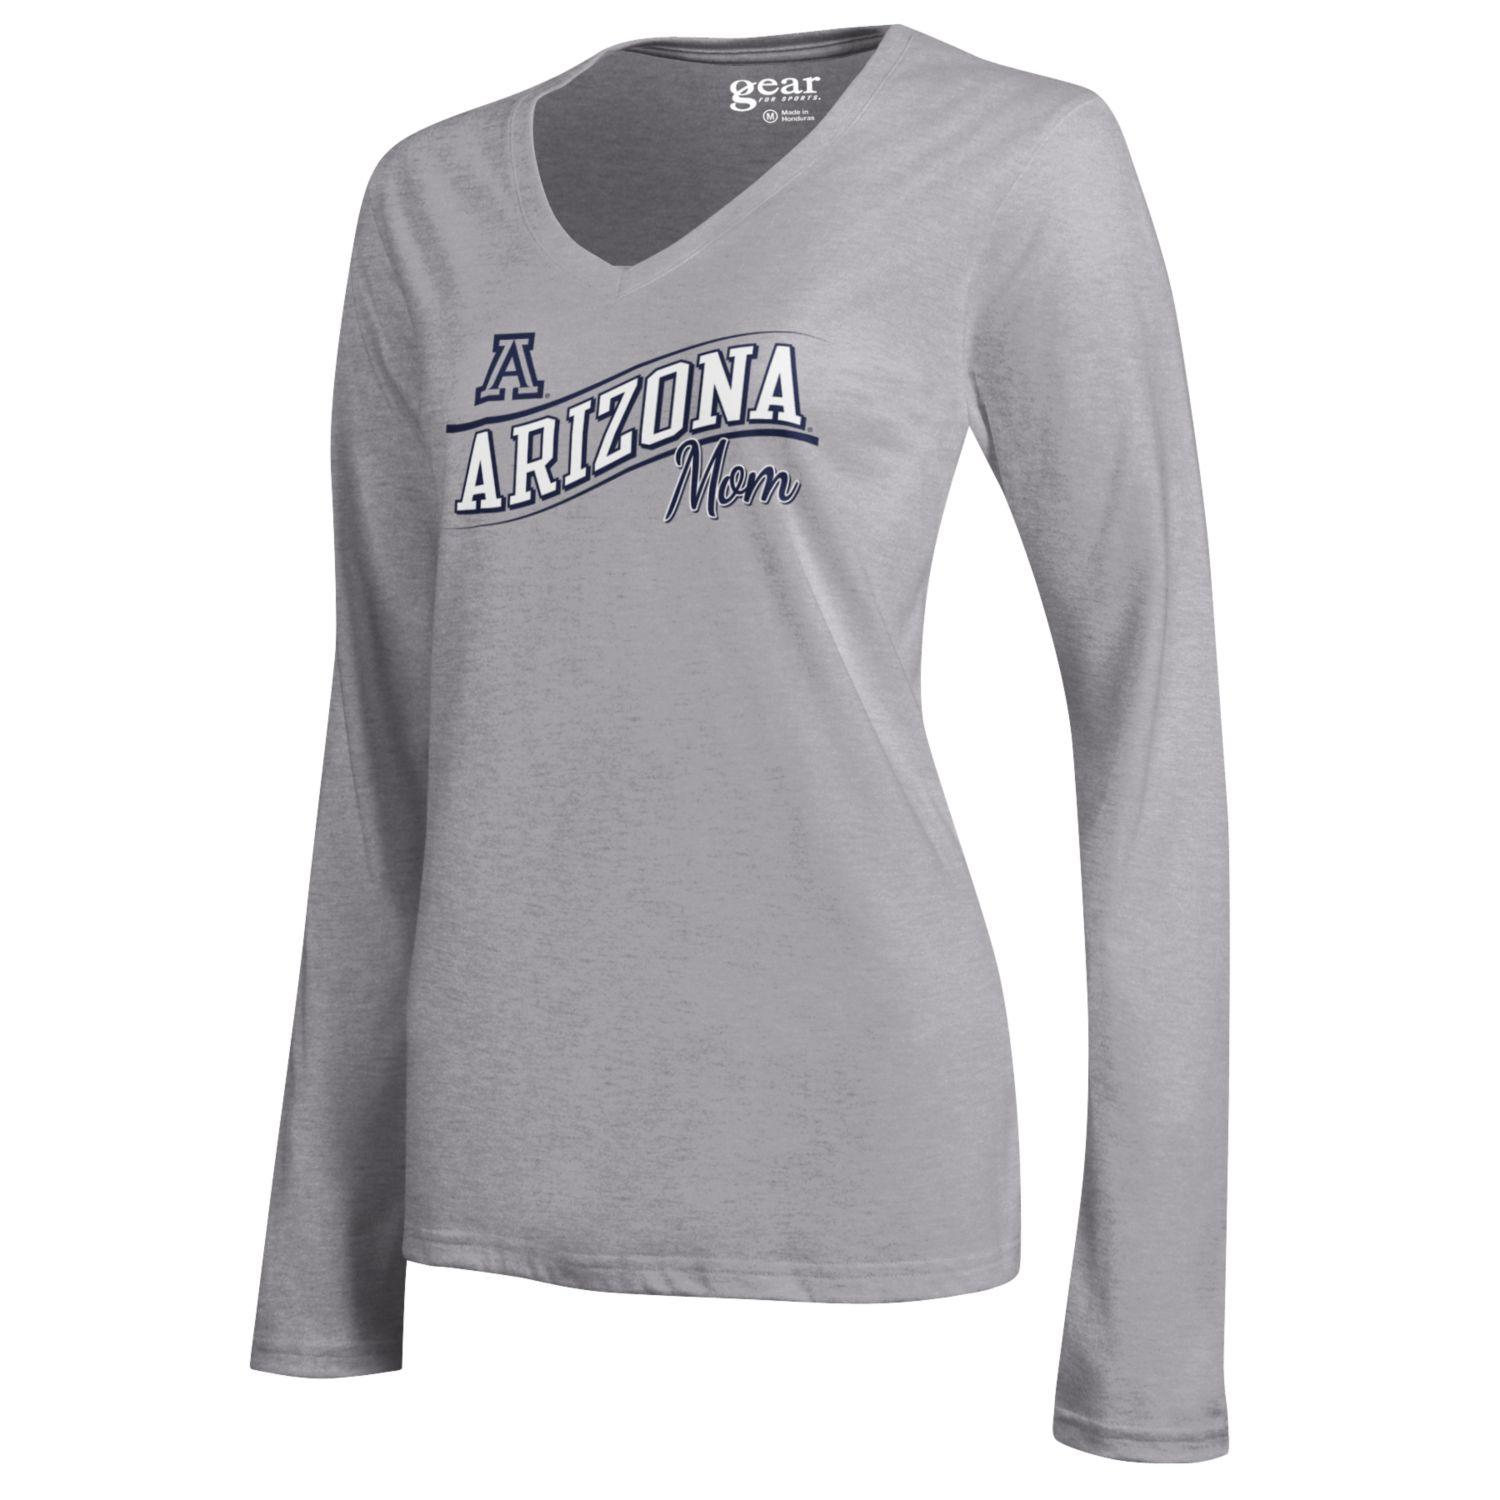 Image For Gear: Arizona Mom Mia V-Neck Long Sleeve Tee - Grey Heather